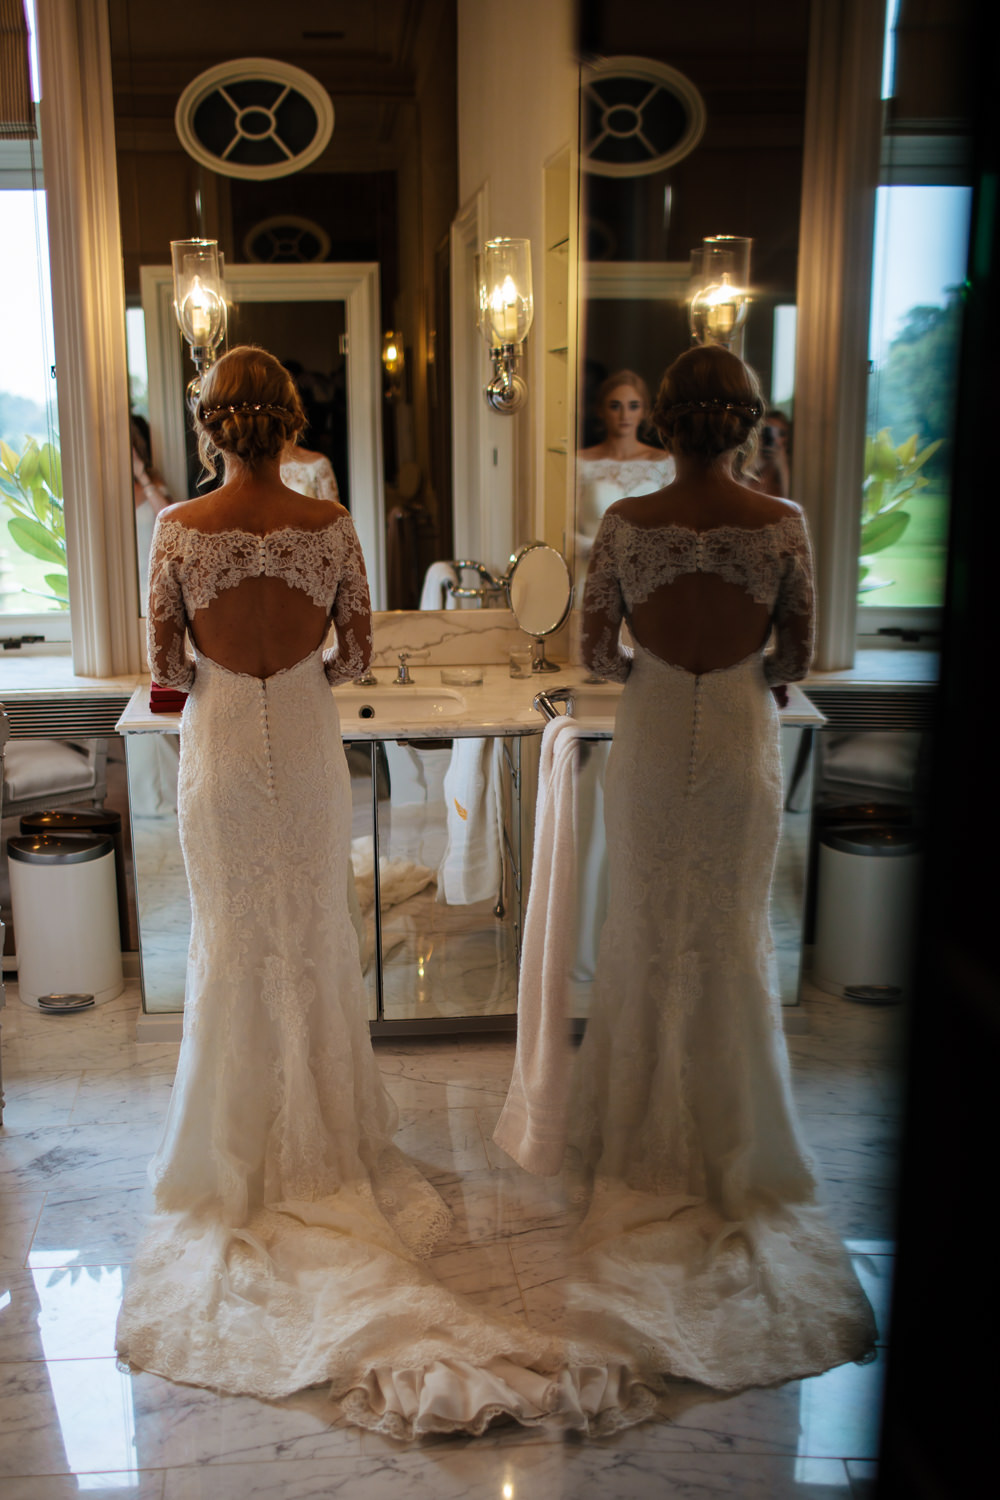 Bride Bridal Dress Gown Fit and Flare Lace Back Sleeves Train Macedonia San Patrick Cowdray House Wedding Matt Sim Photography